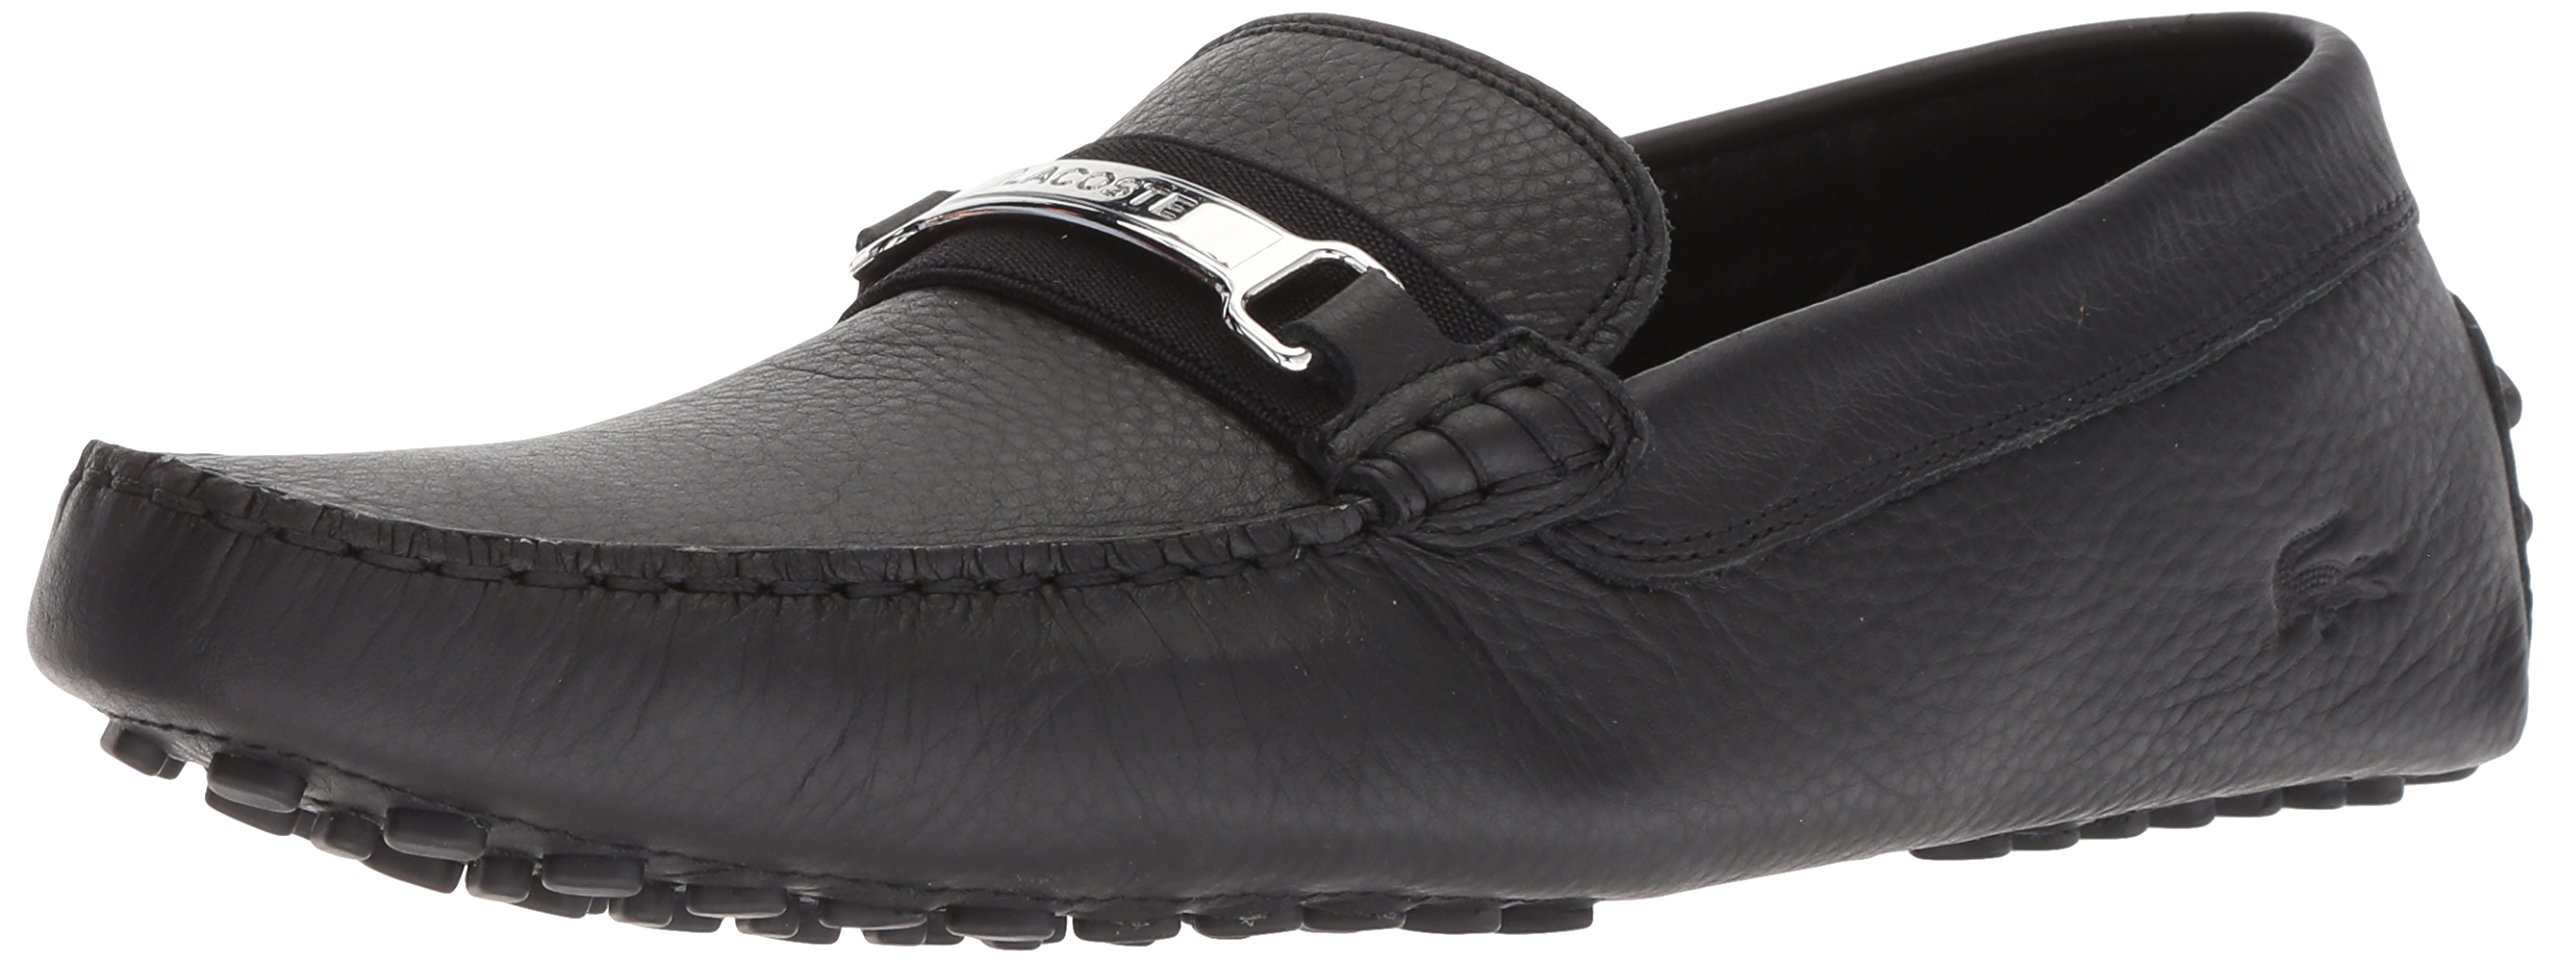 Lacoste Men's ANSTED Driving Style Loafer, Black, 13 Medium US